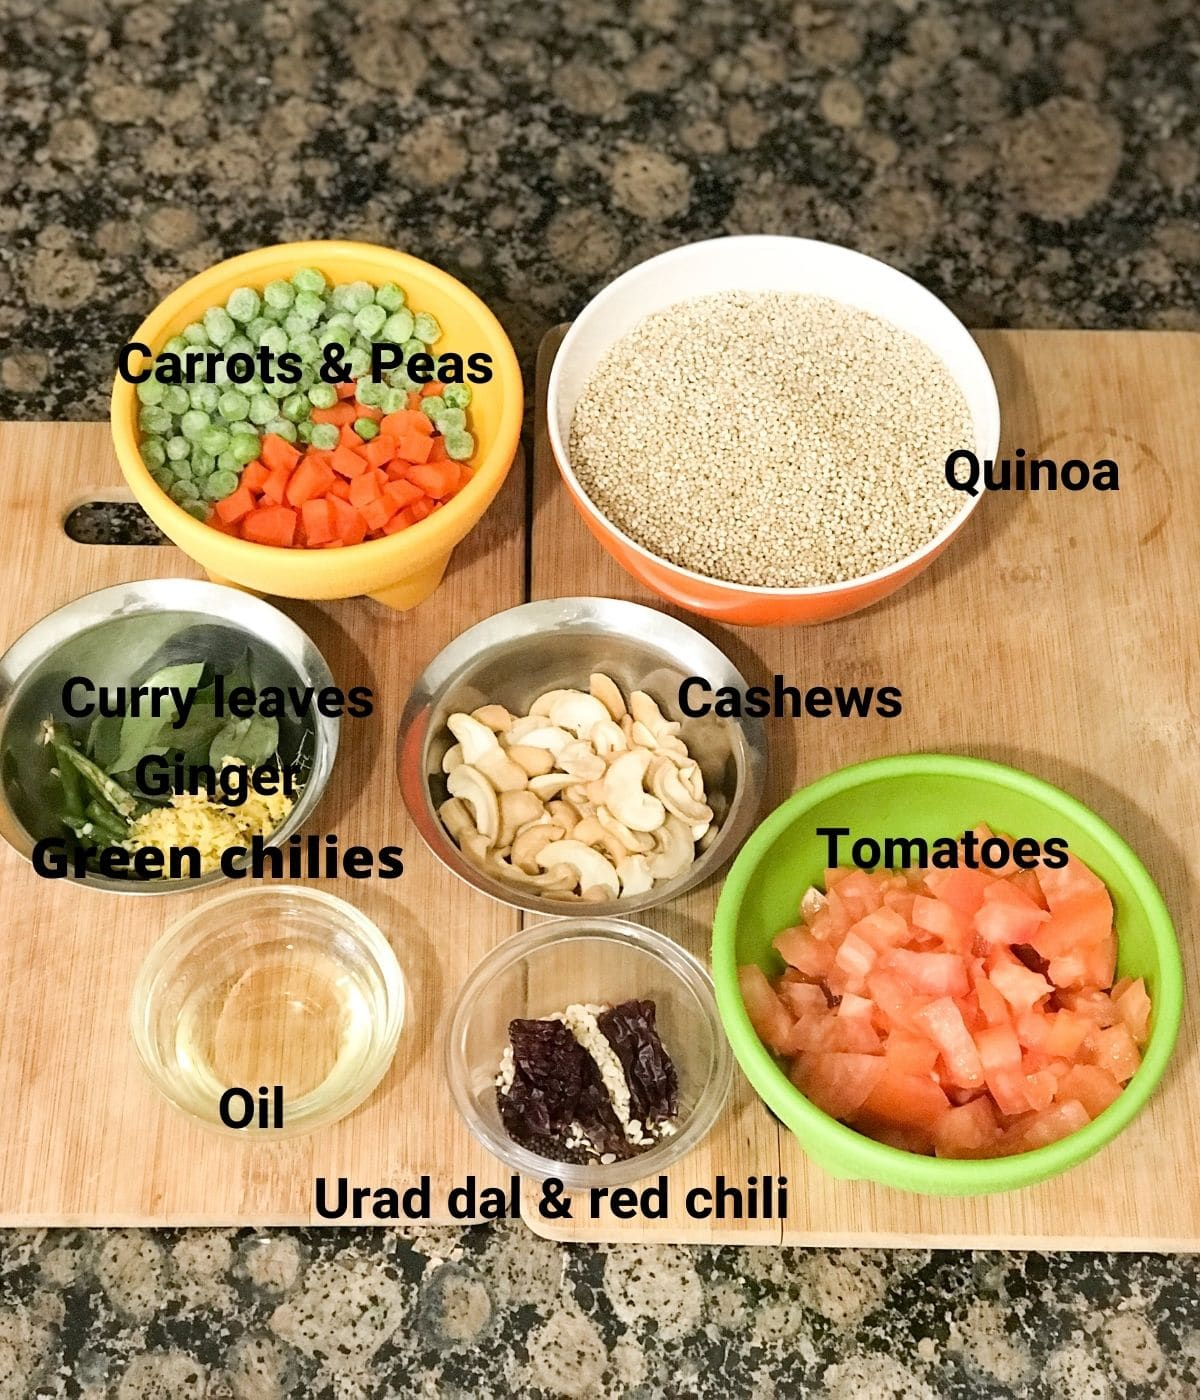 All the ingredients are placed on the counter for quinoa upma including quinoa, vegetables, tomatoes etc